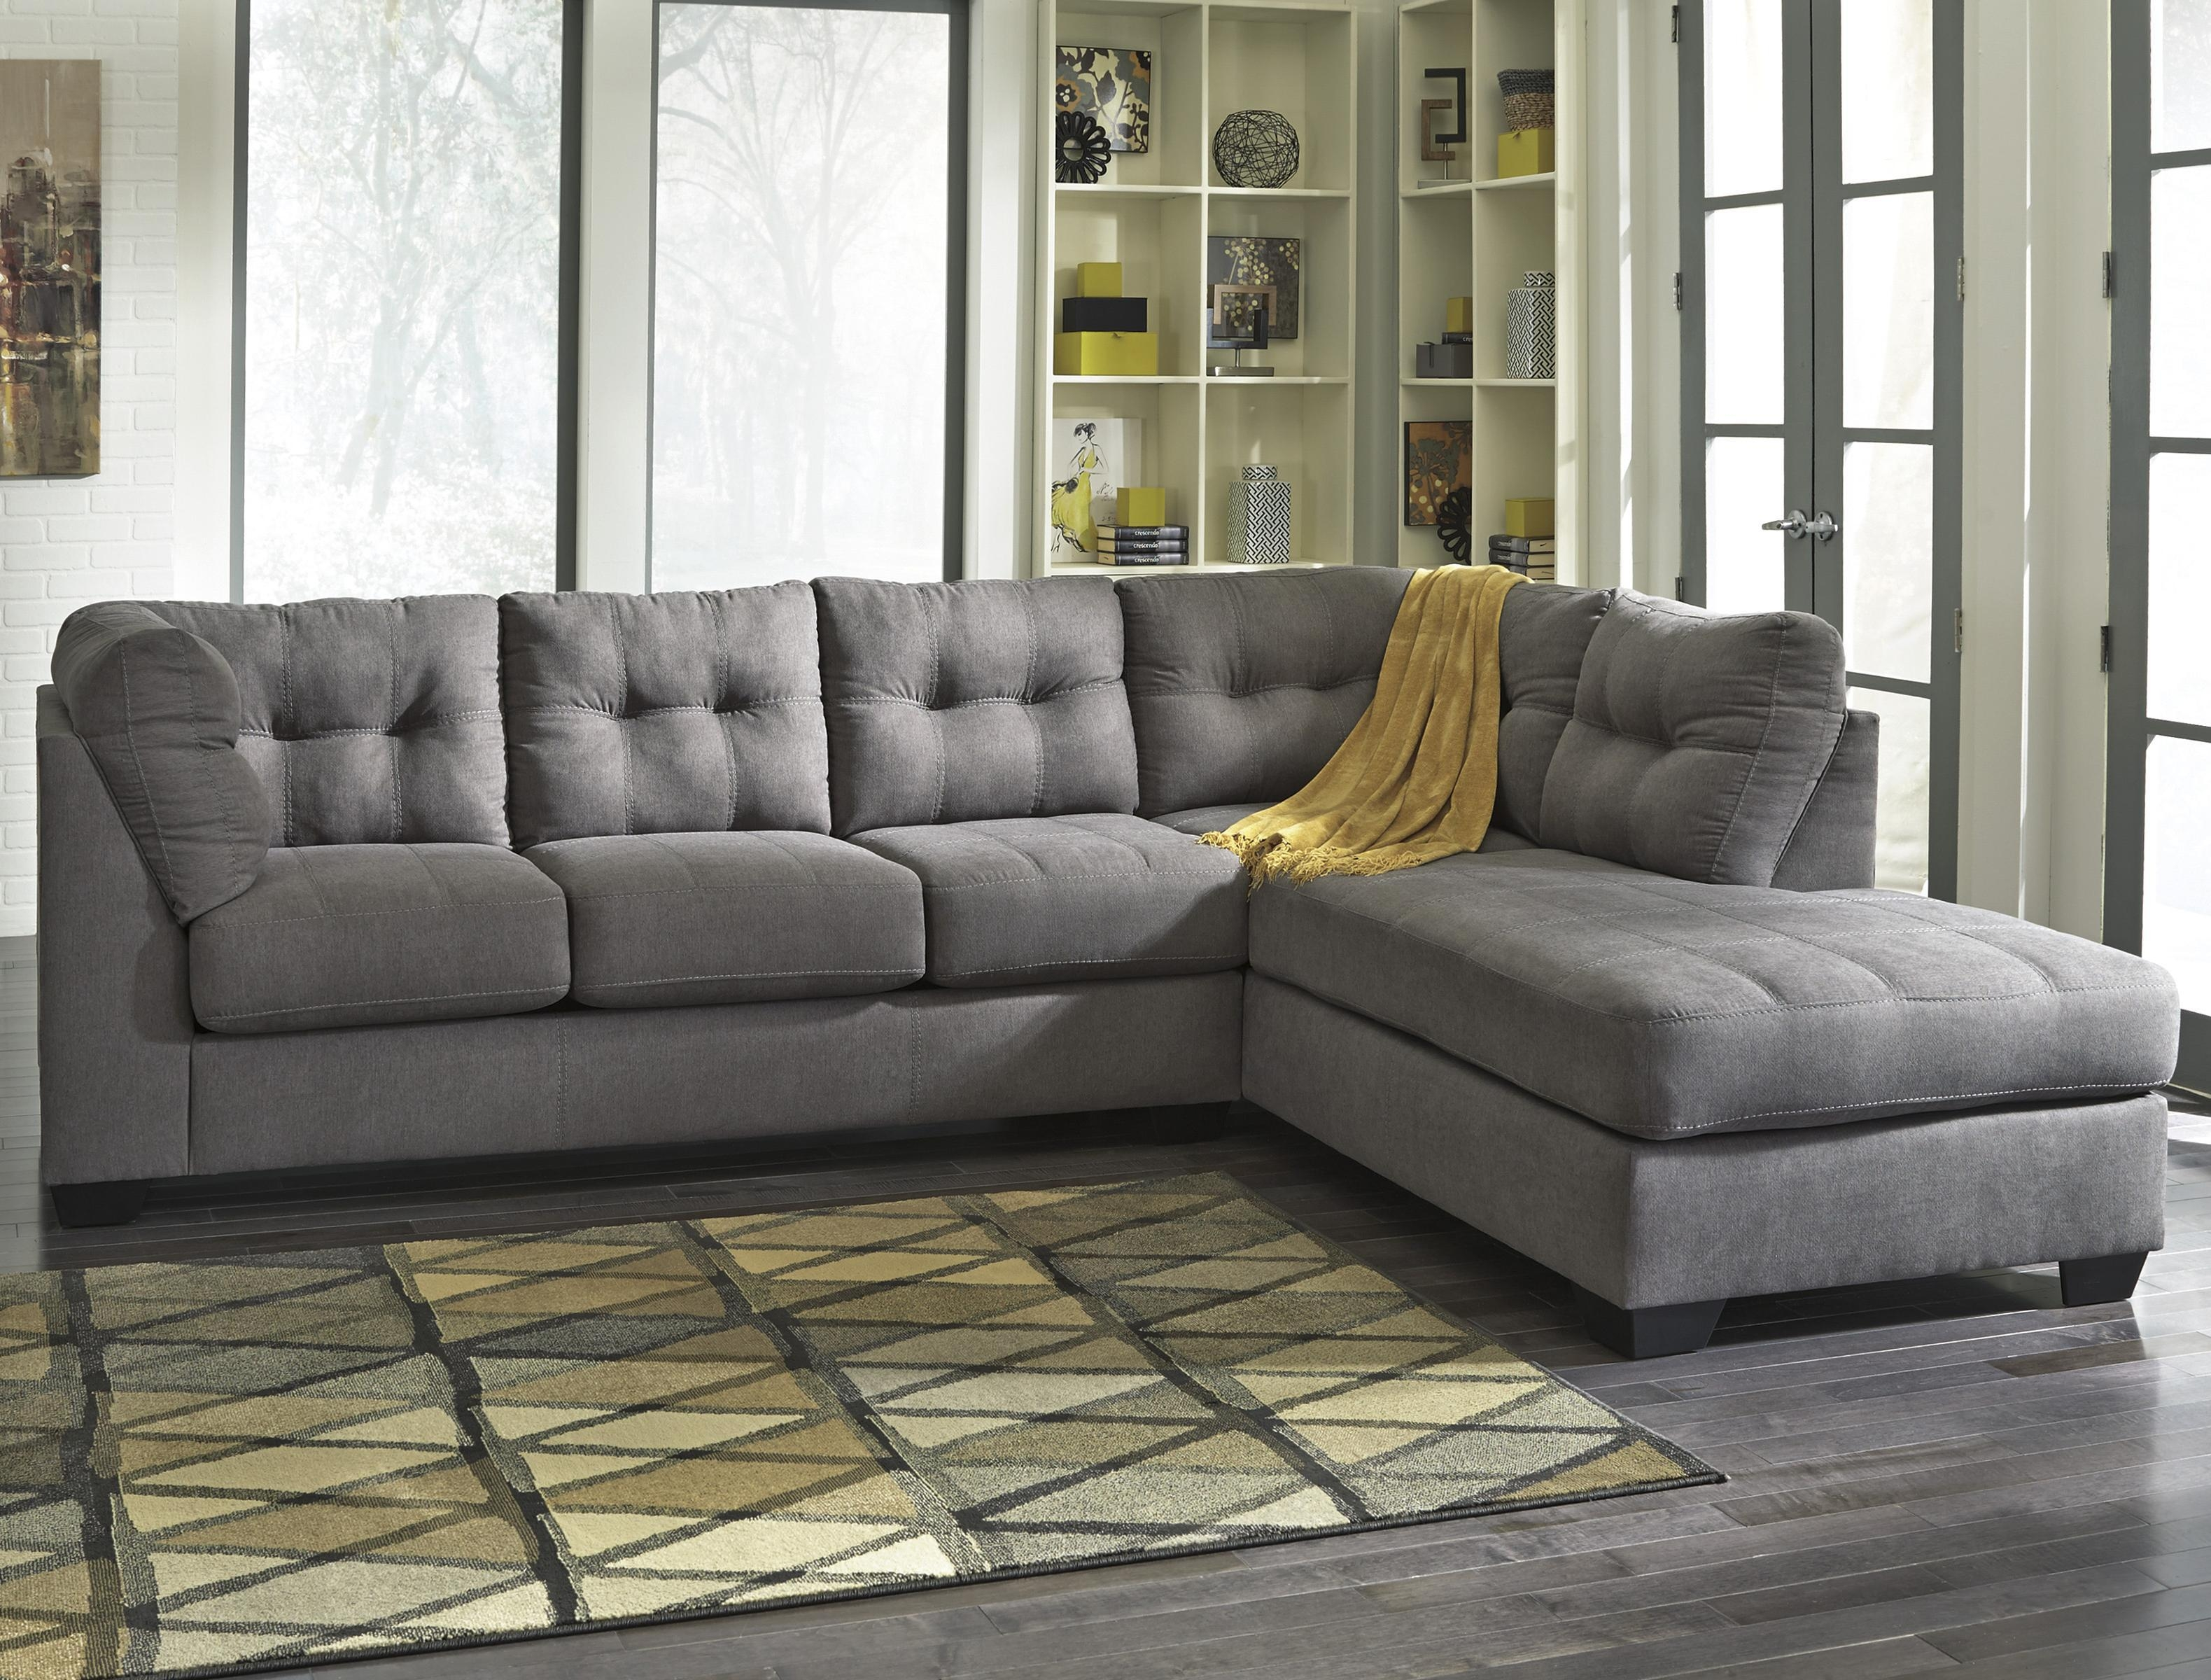 Benchcraft Maier – Charcoal 2 Piece Sectional With Right Chaise Pertaining To Sectional Sofa With 2 Chaises (View 3 of 20)